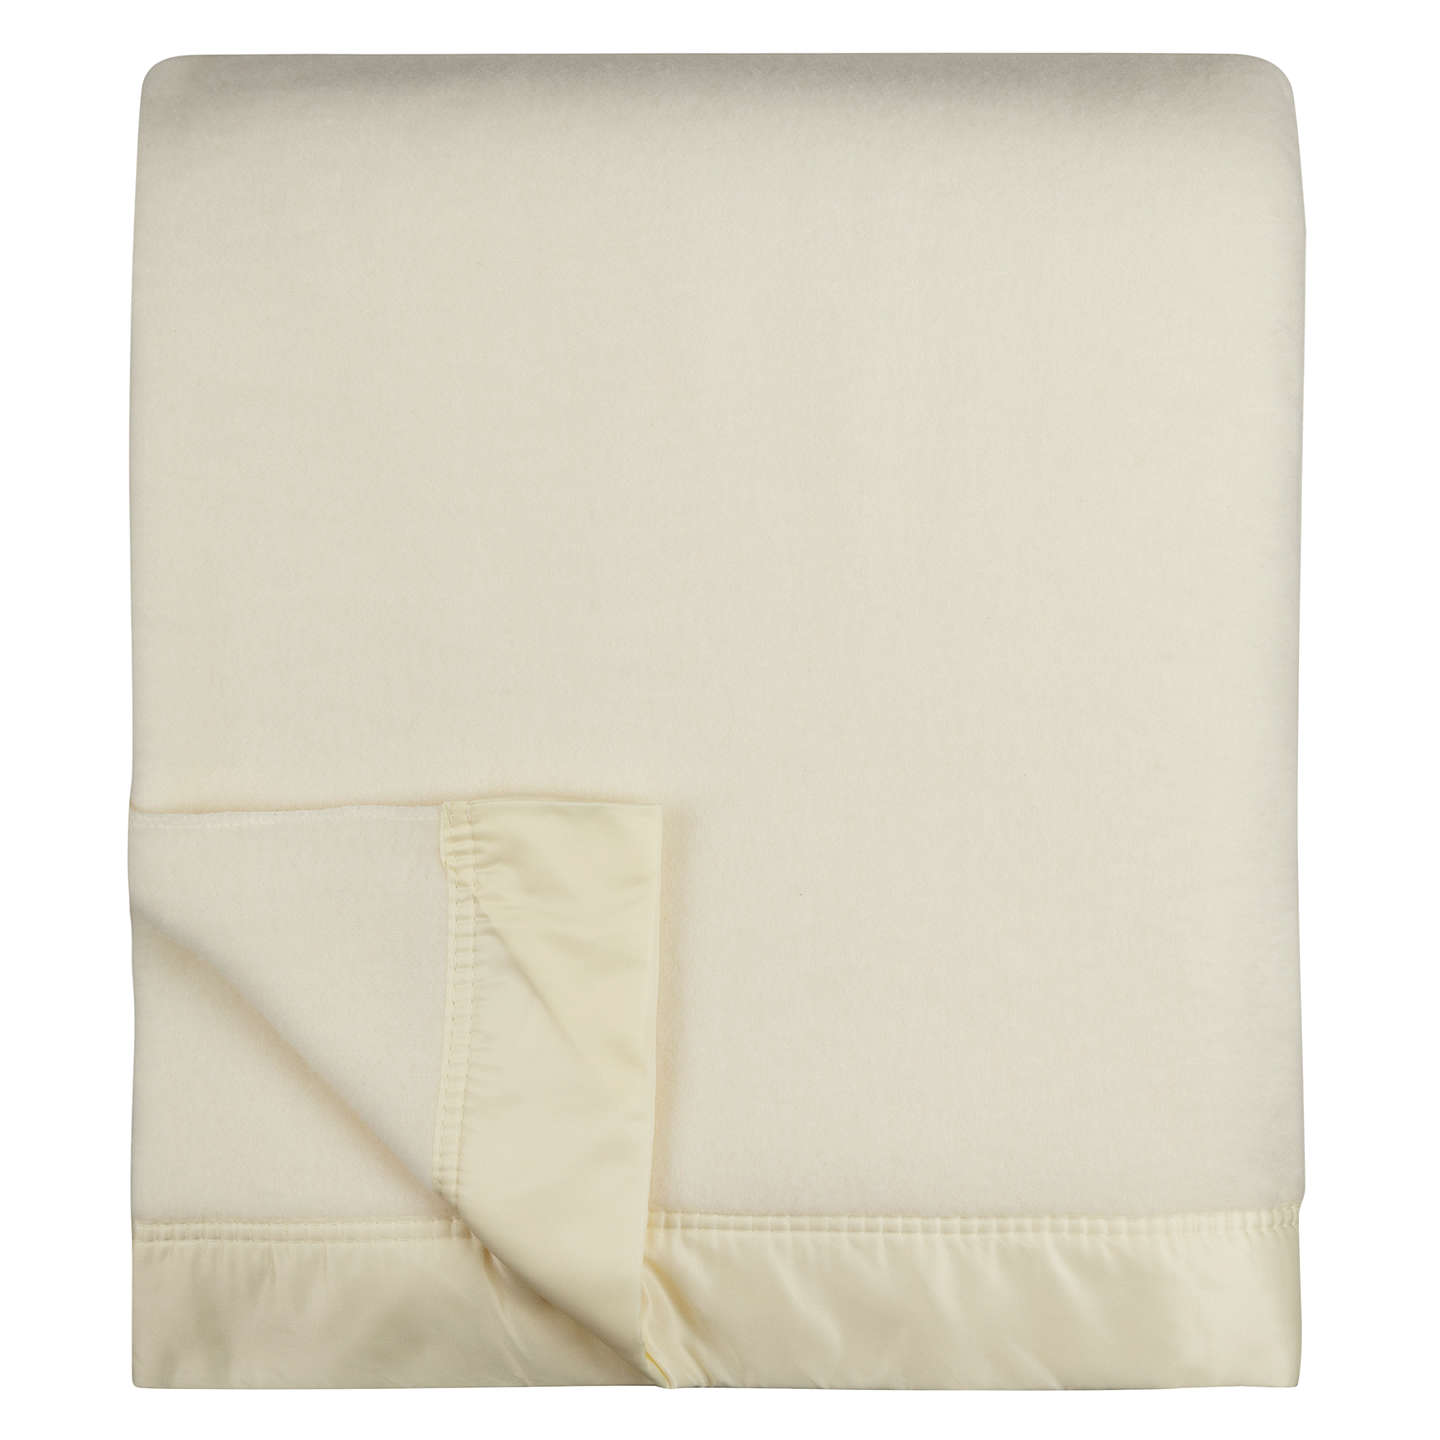 BuyJohn Atkinson by Hainsworth Empress Merino Wool Blanket, Winter White, 230 x 255cm Online at johnlewis.com